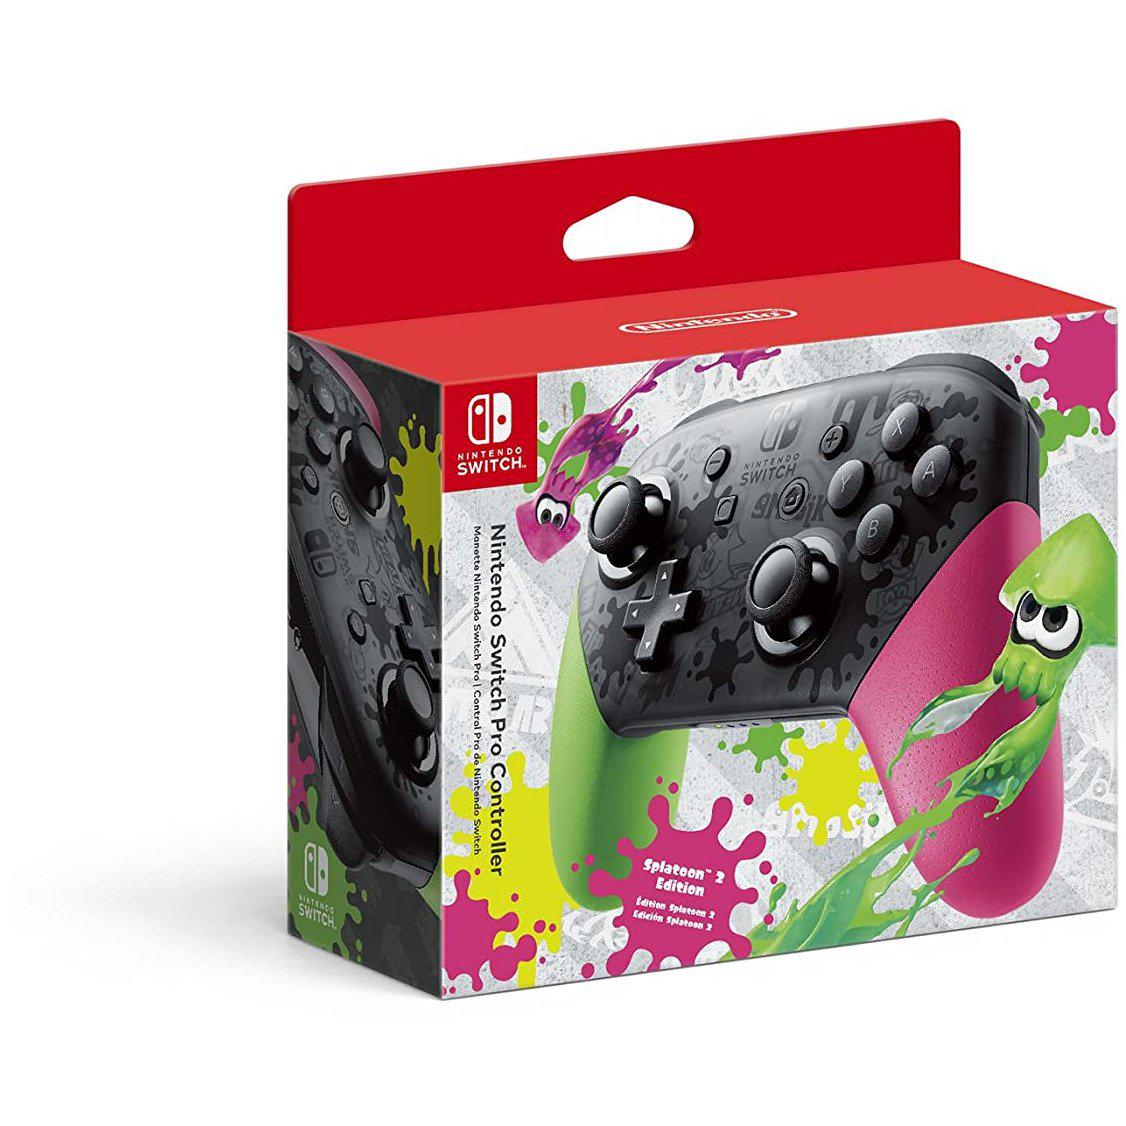 Nintendo Official Switch Pro Controller - Splatoon 2 Edition-MercadoGames.com